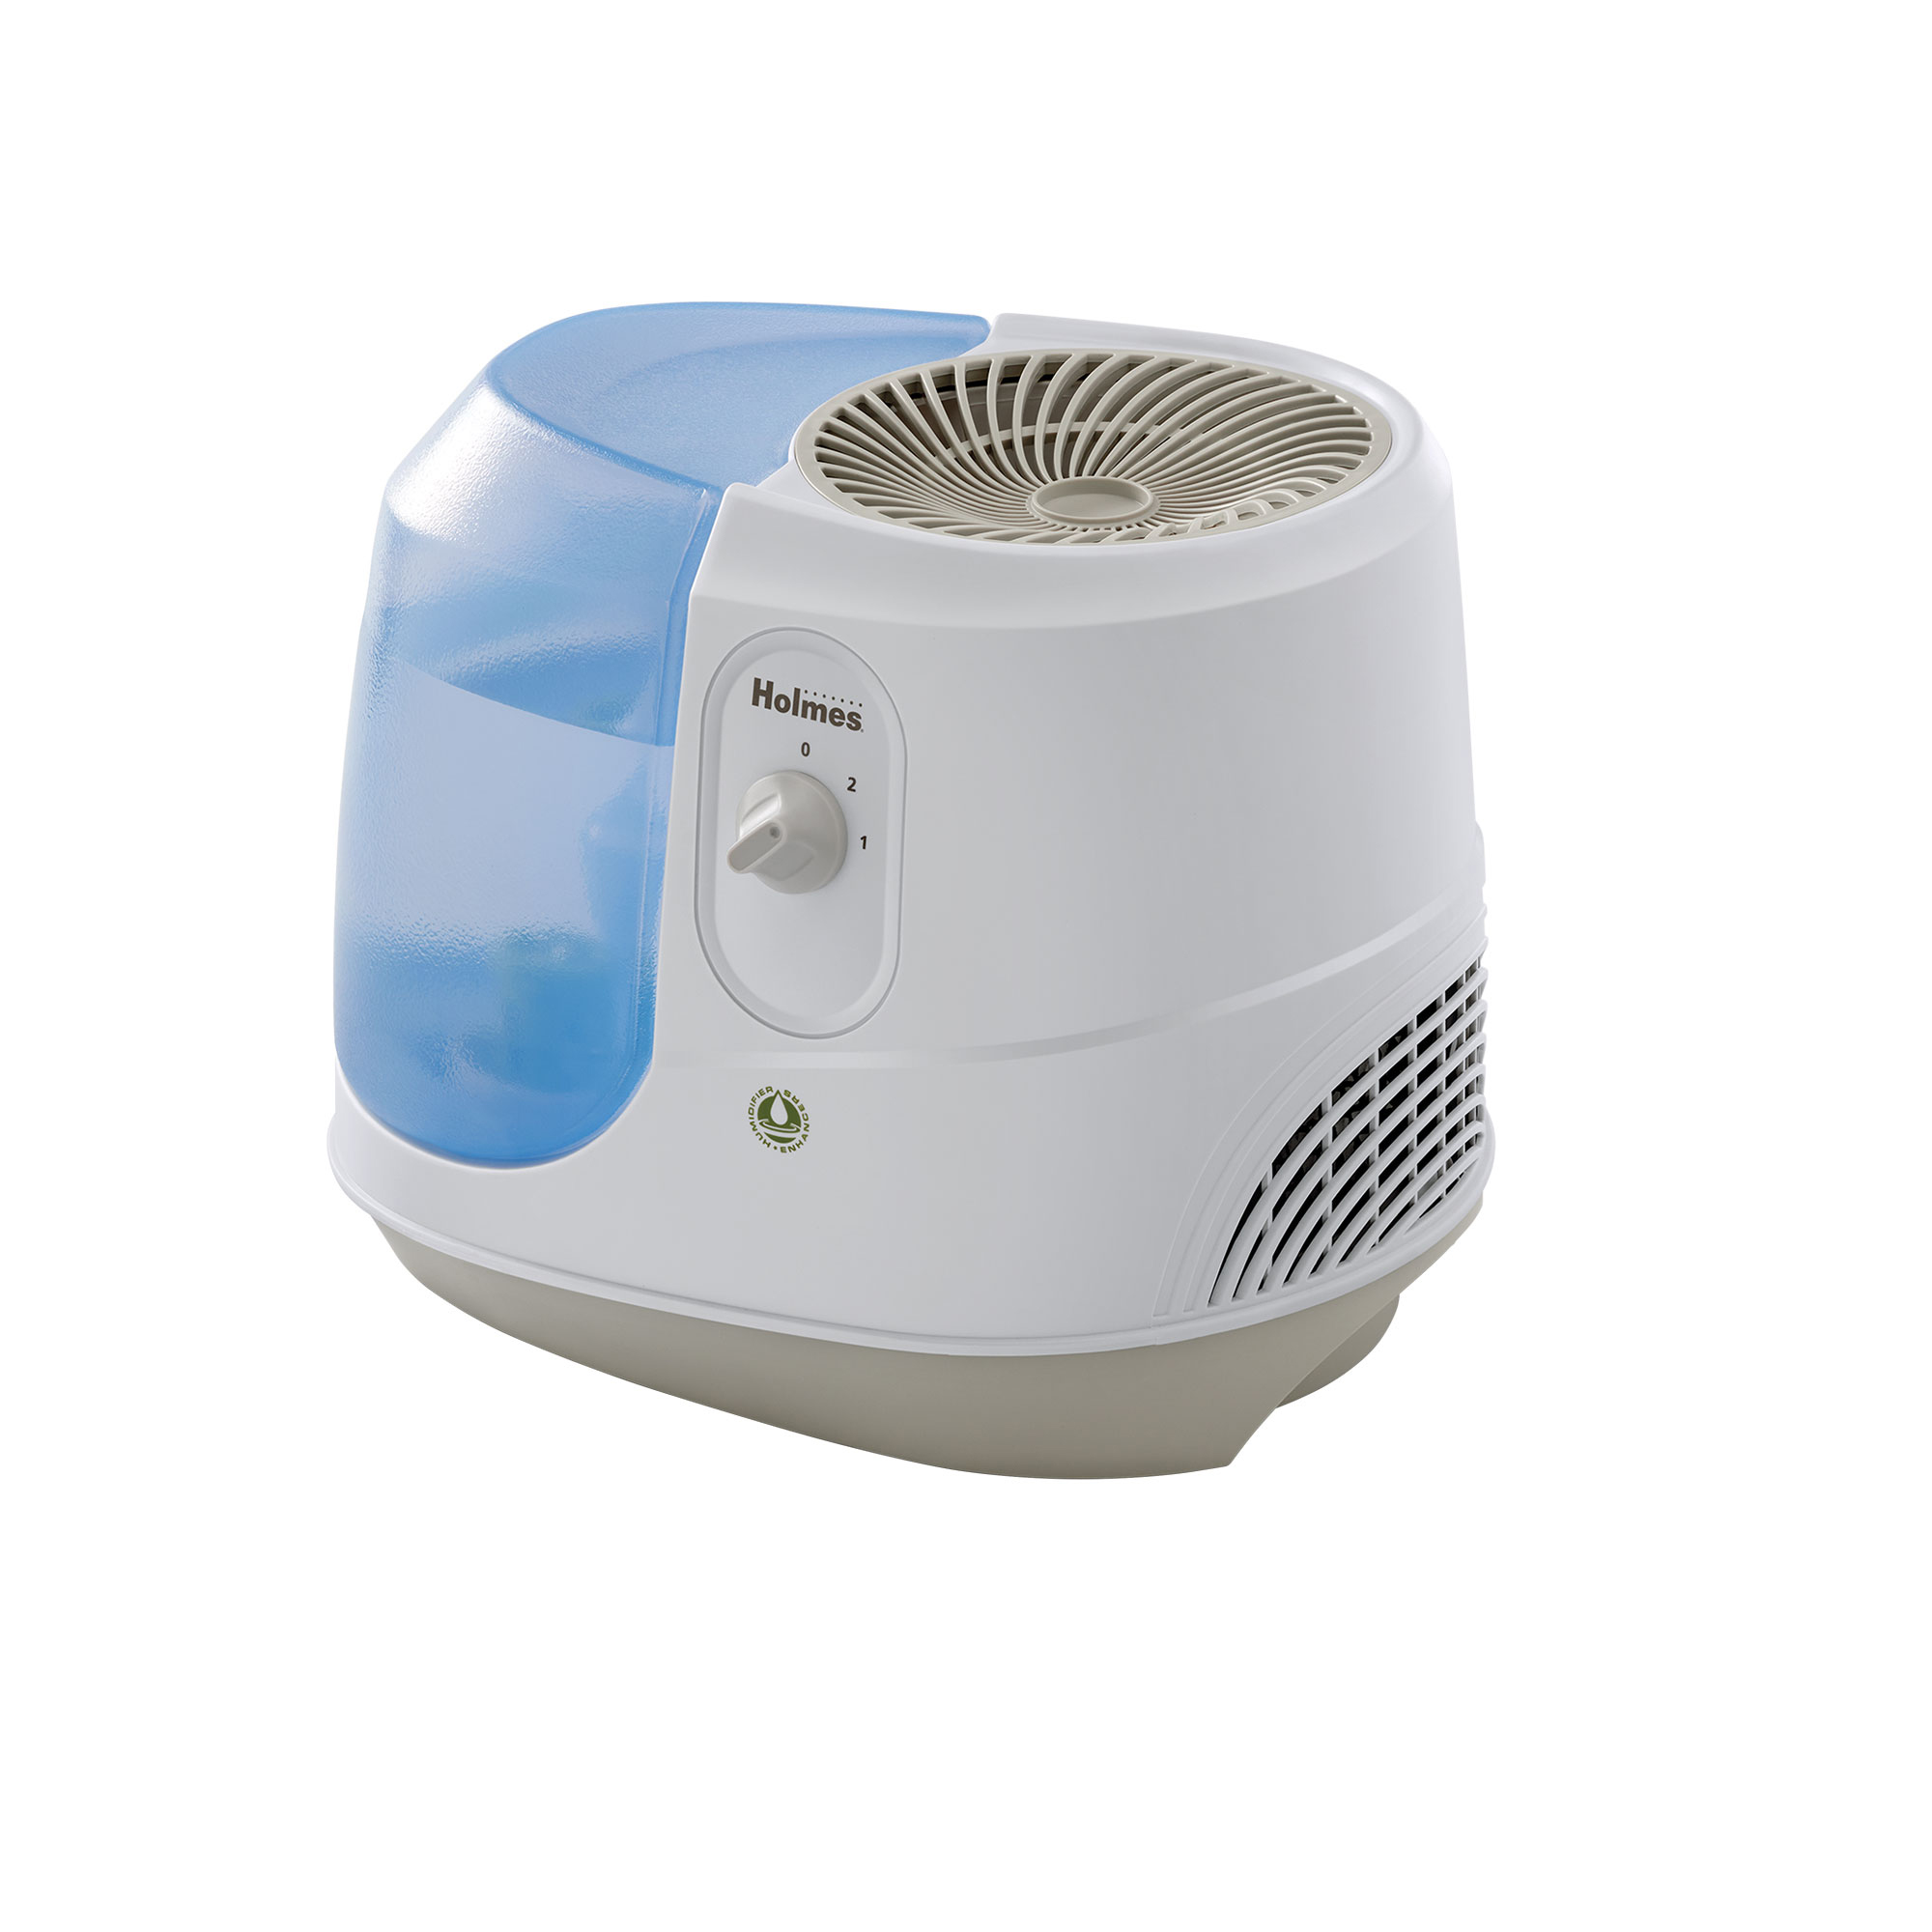 Holmes Cool Mist Humidifier Small Room 1 Gallon White